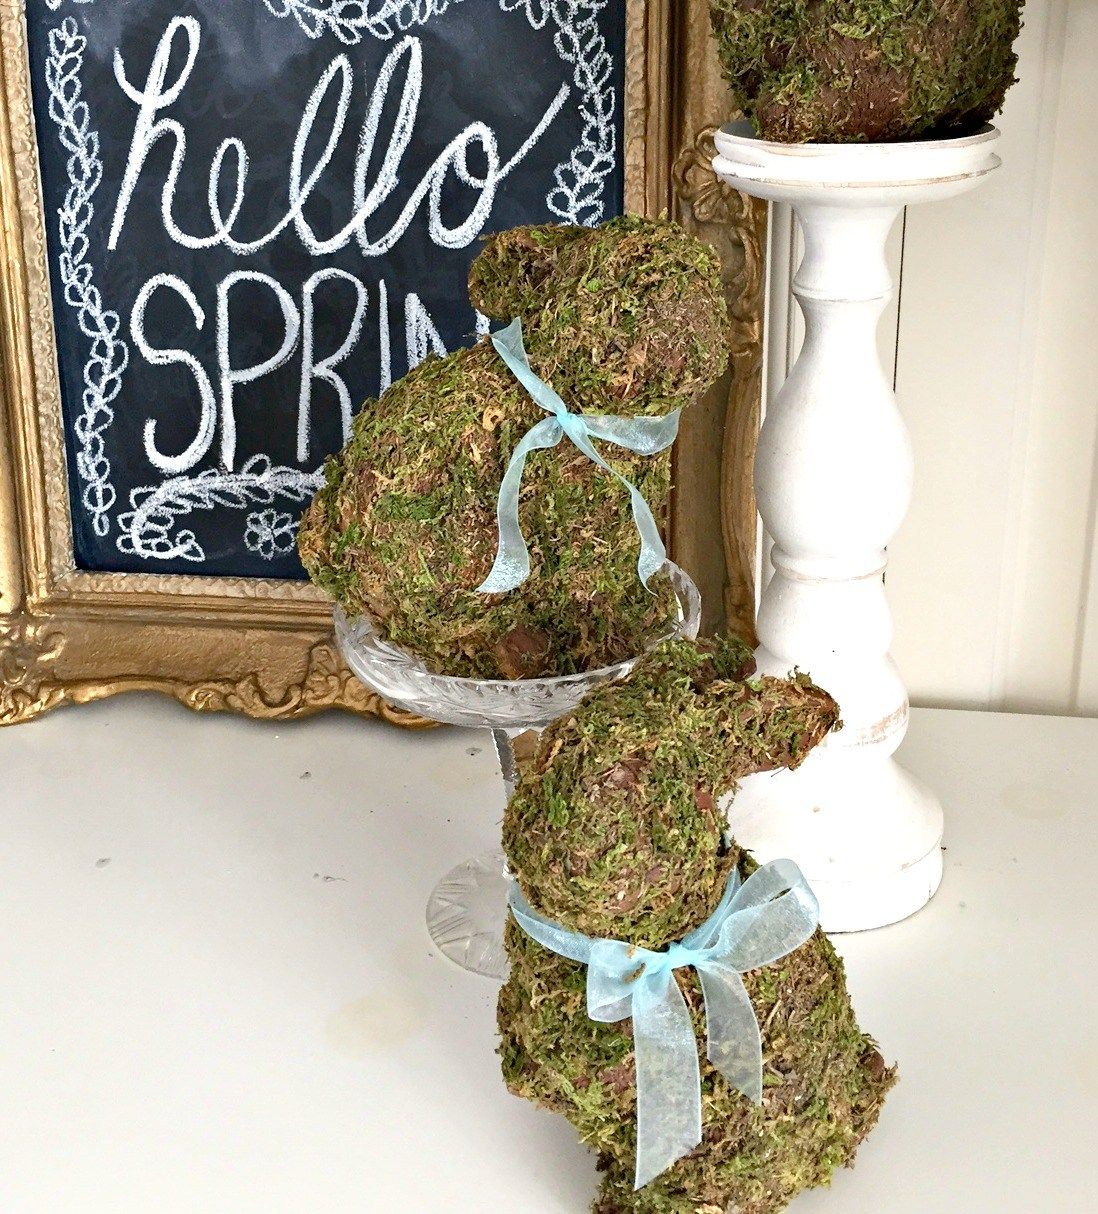 Moss Covered Bunnies for Easter and Spring Decor DIY Easter Decor apurdylittlehouse.com